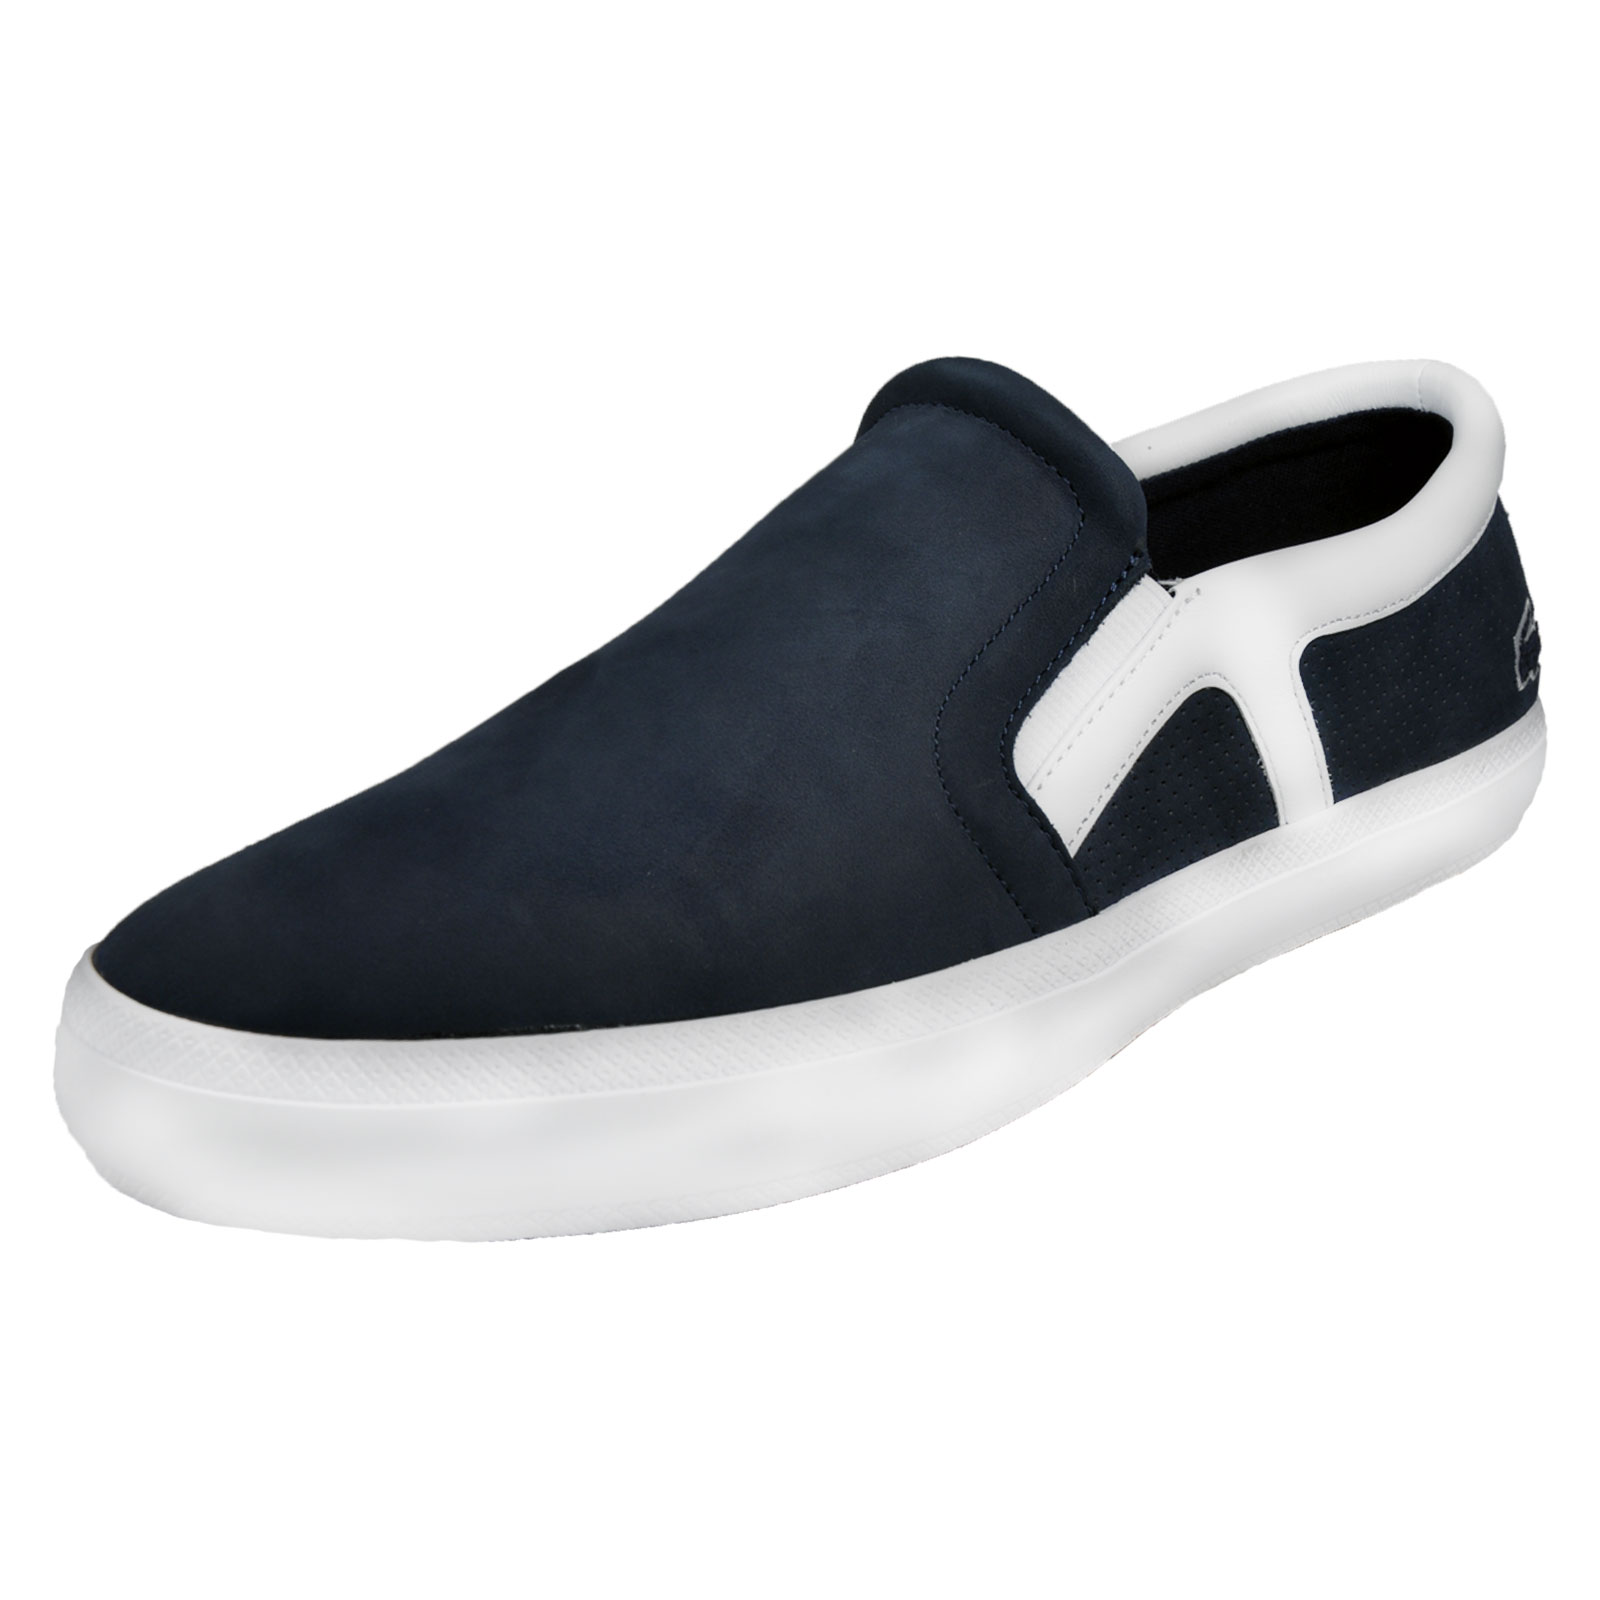 0db5f9a97819 Details about Lacoste Rene Chunky 116 Mens Designer Slip On Deck Shoes Navy